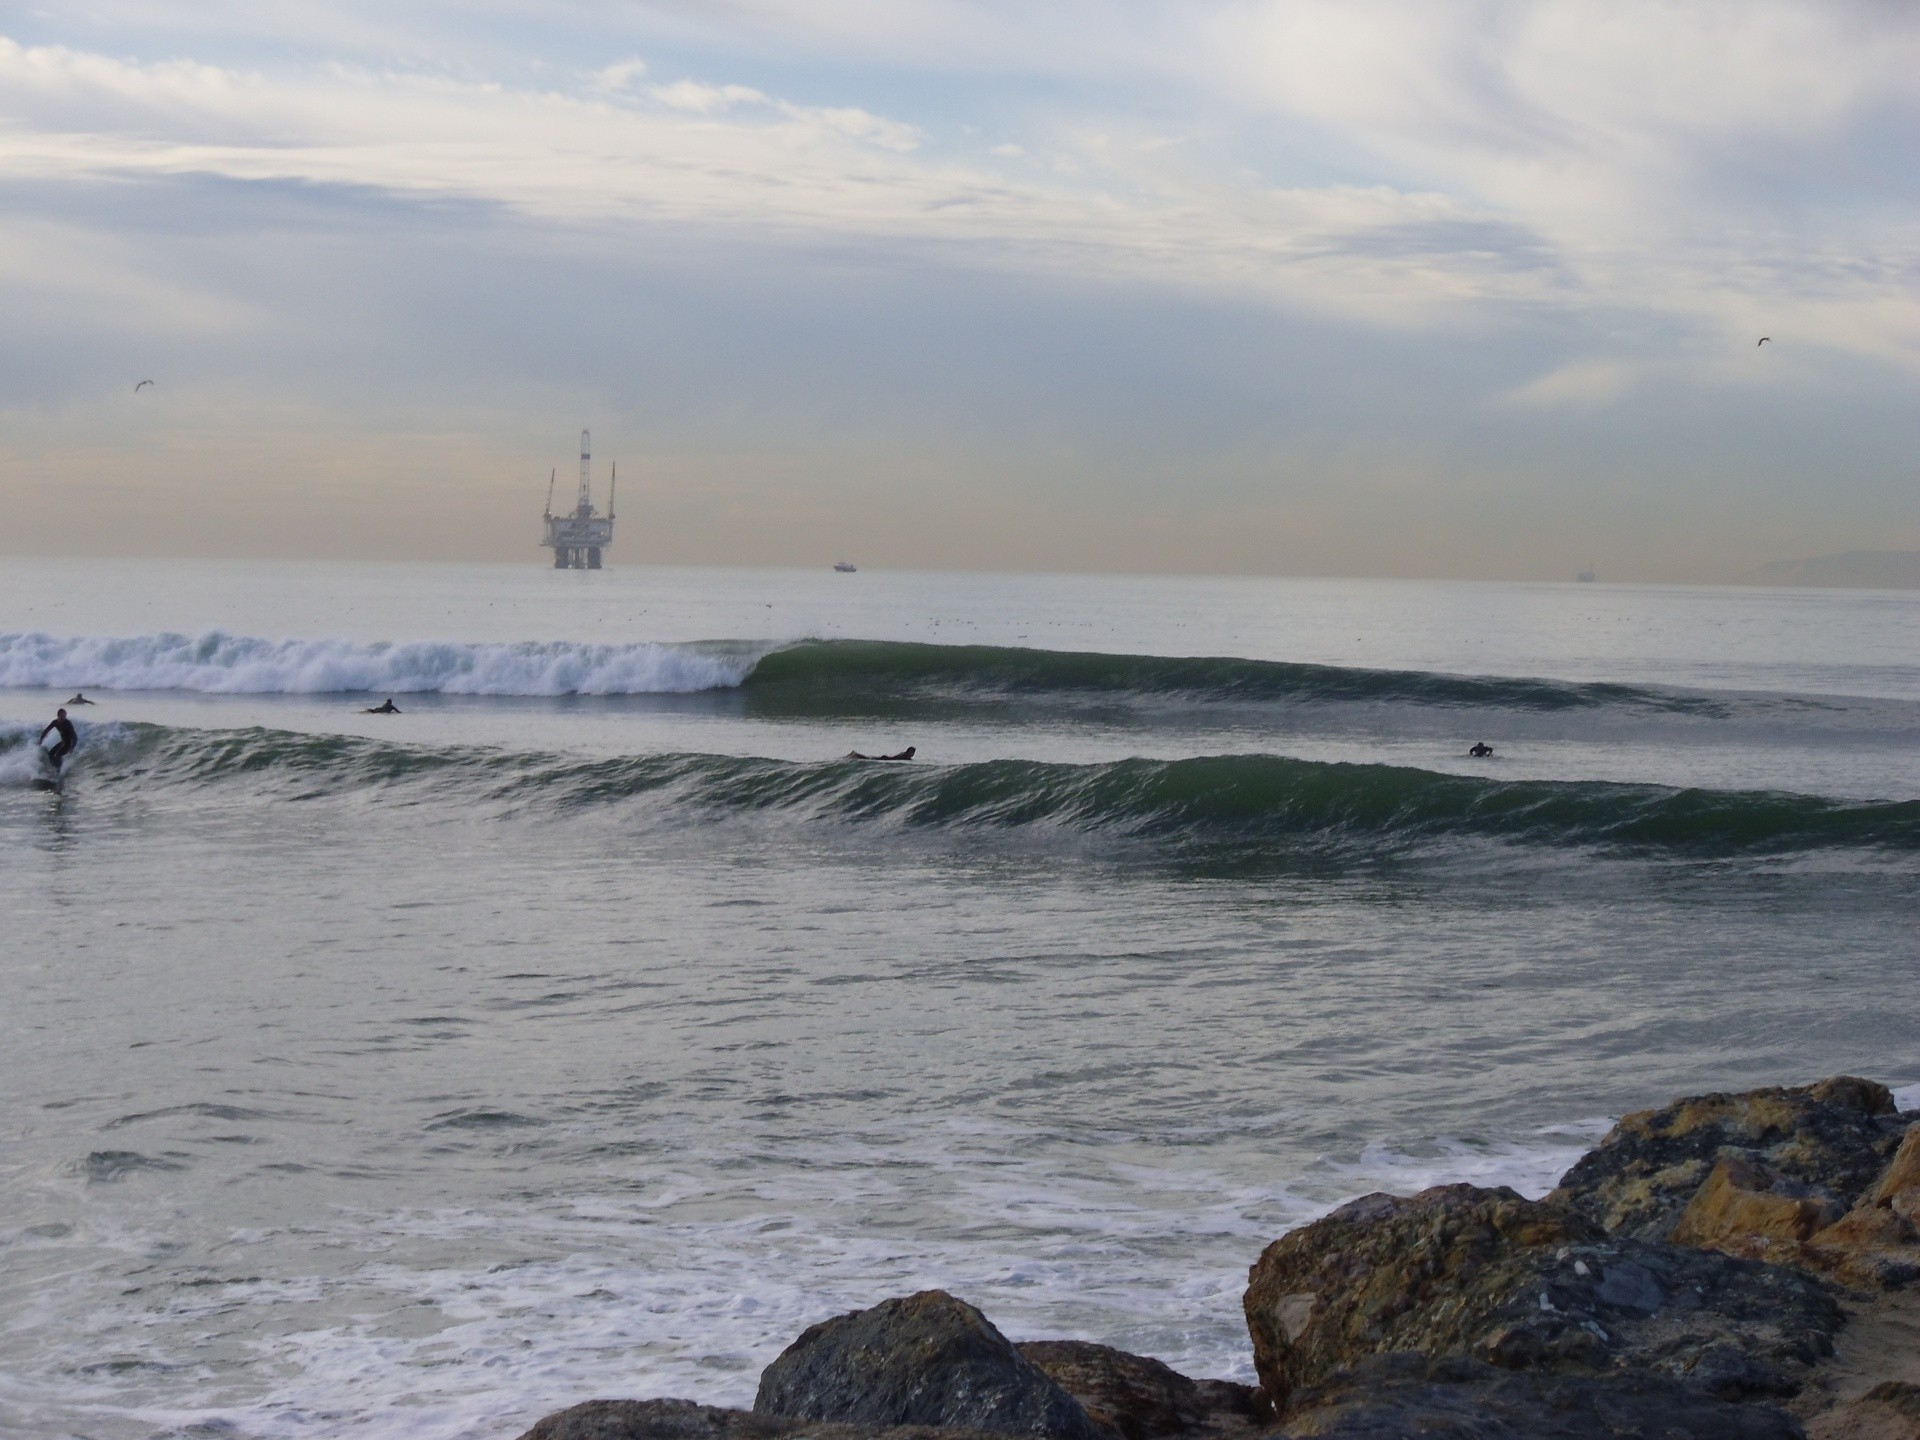 Mike Reddick's photo of Bolsa Chica